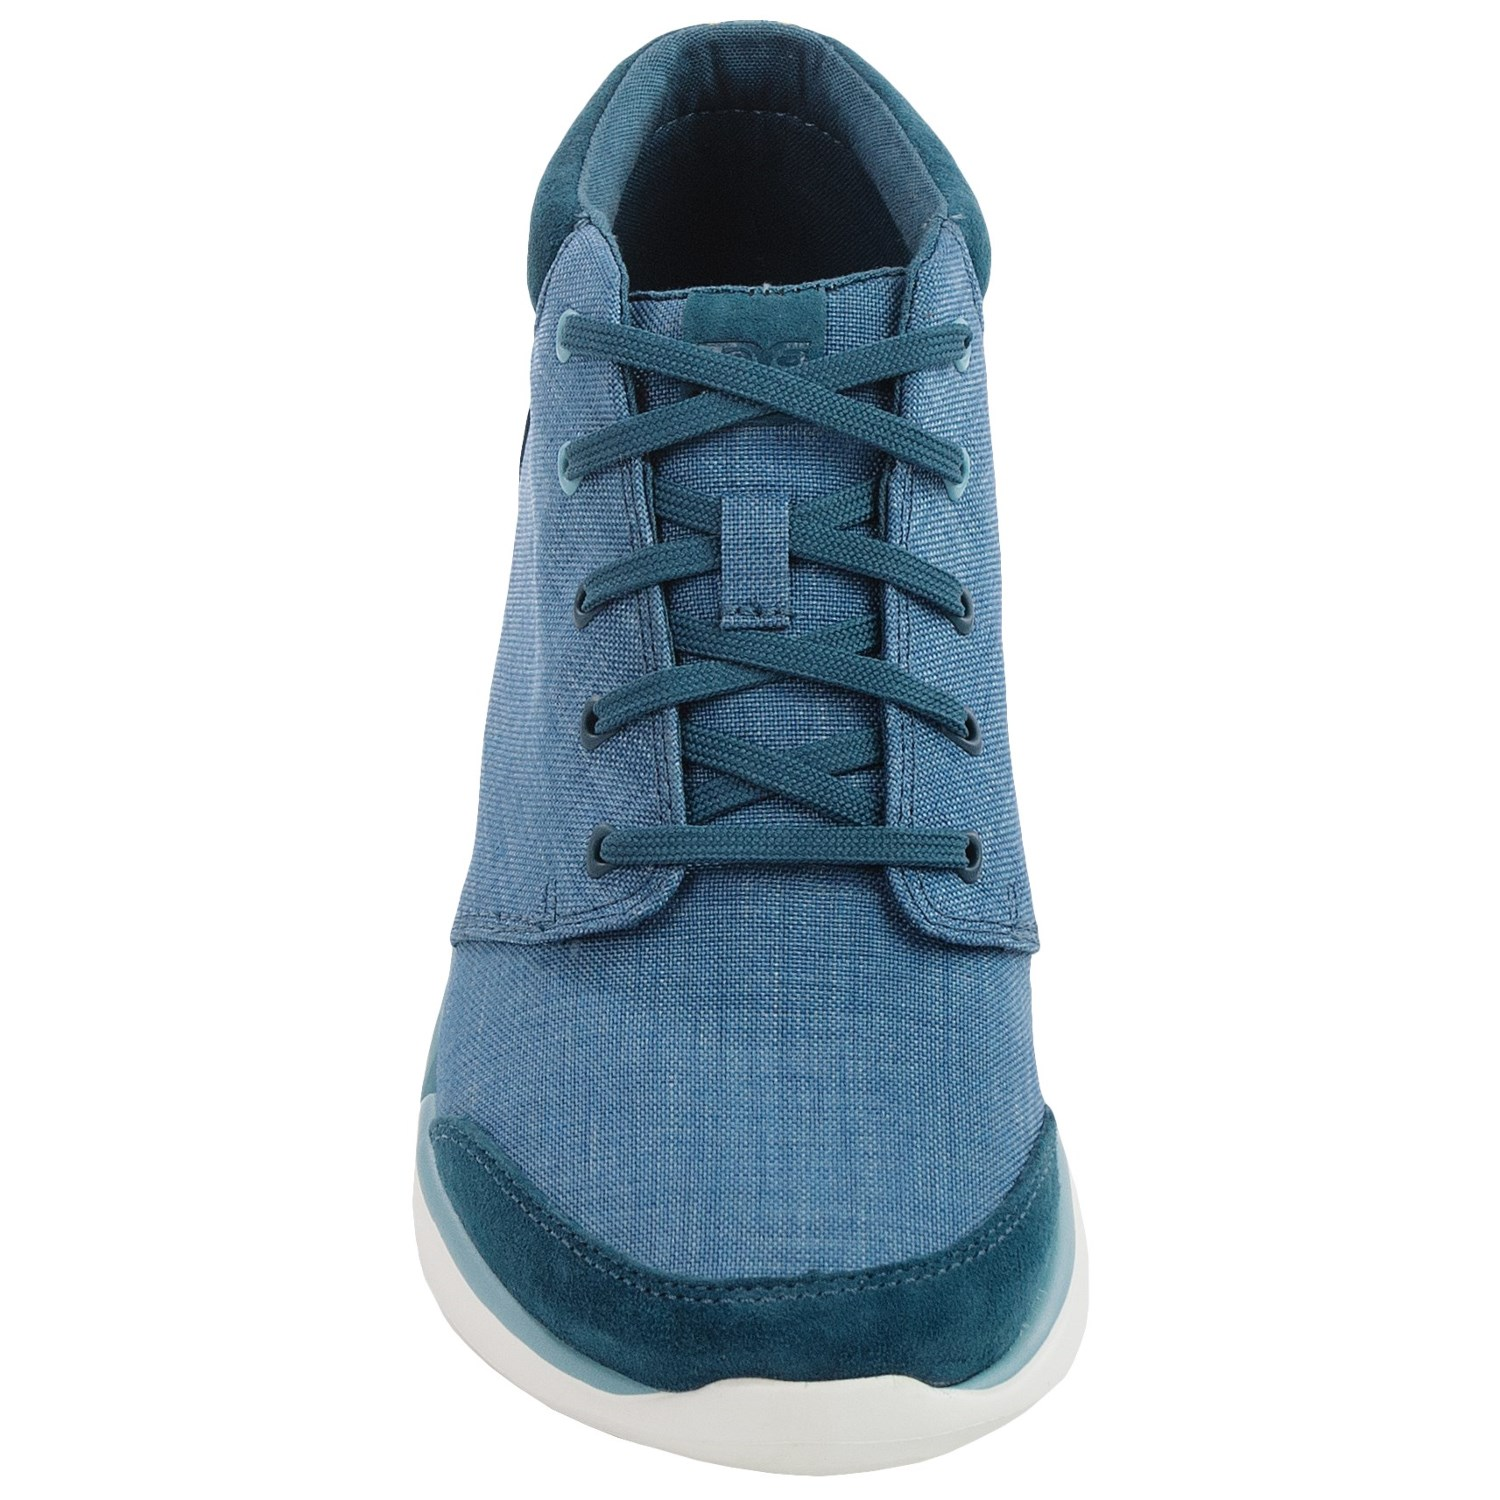 teva wander canvas chukka shoes for save 50